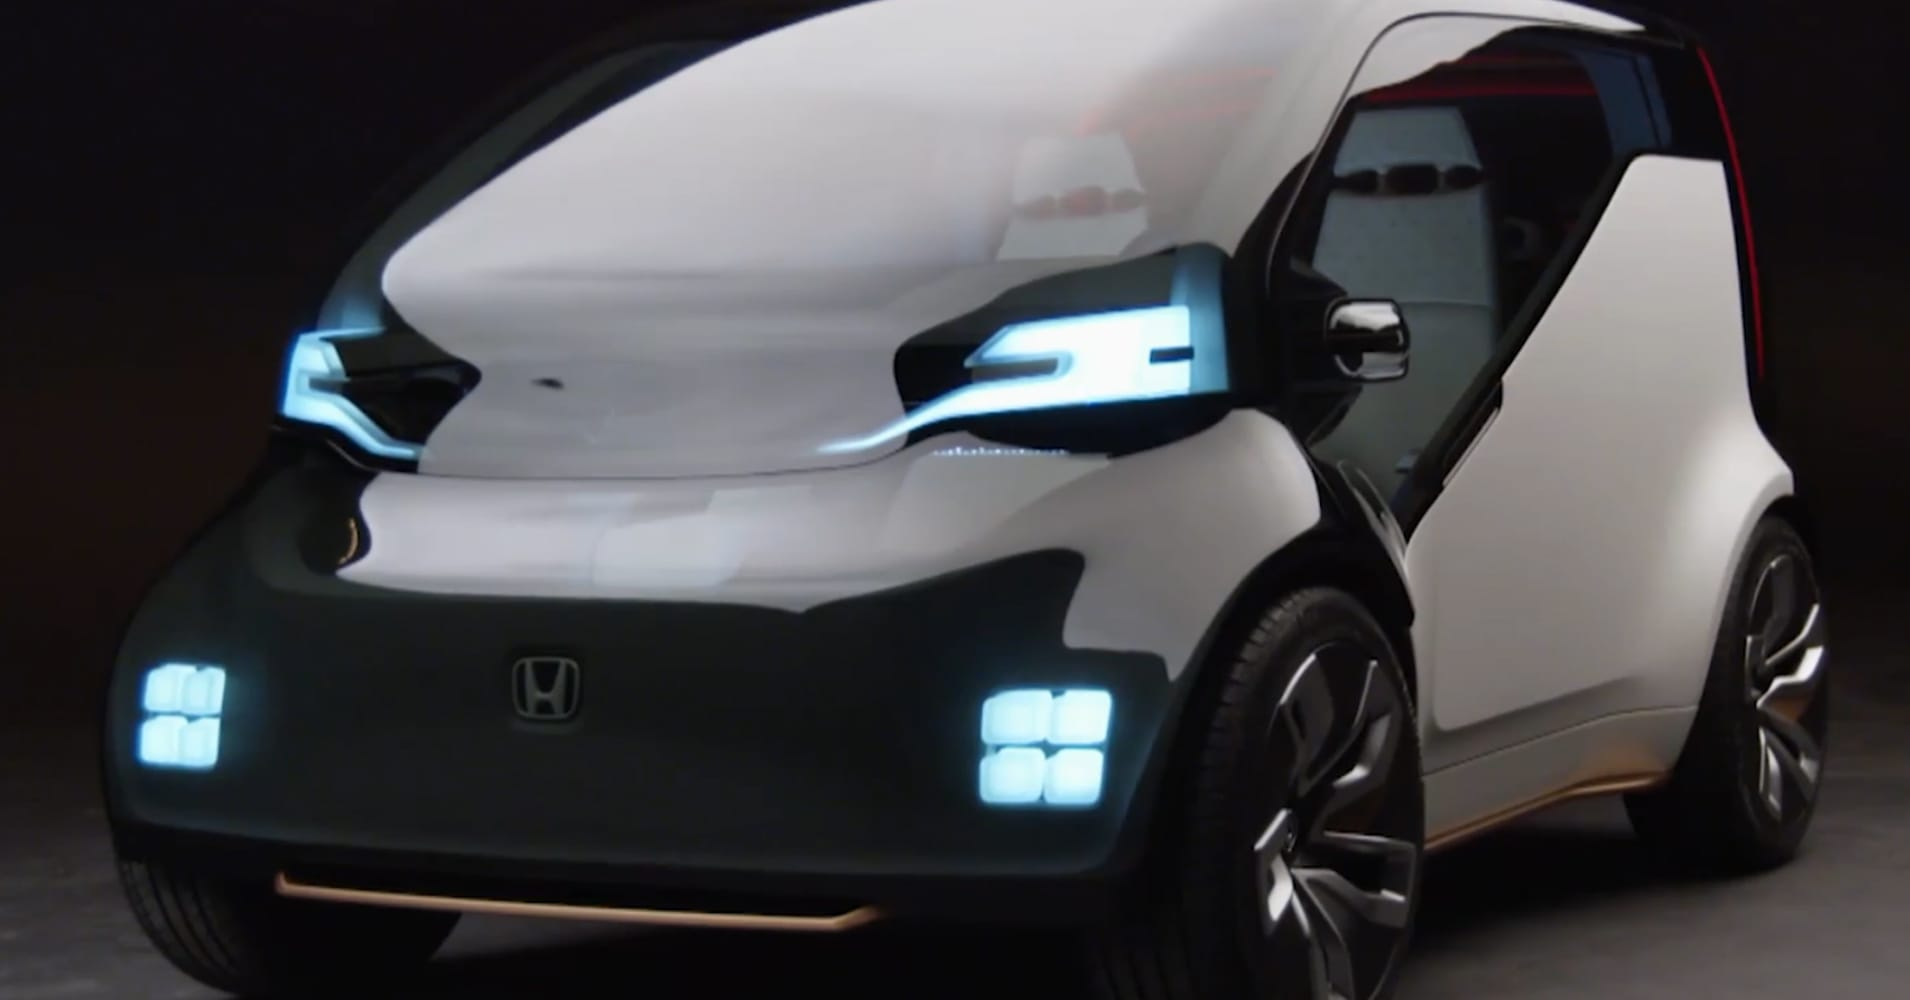 Honda S Futuristic Concept Car Has Artificial Intelligence And Wants To Know How You Re Feeling